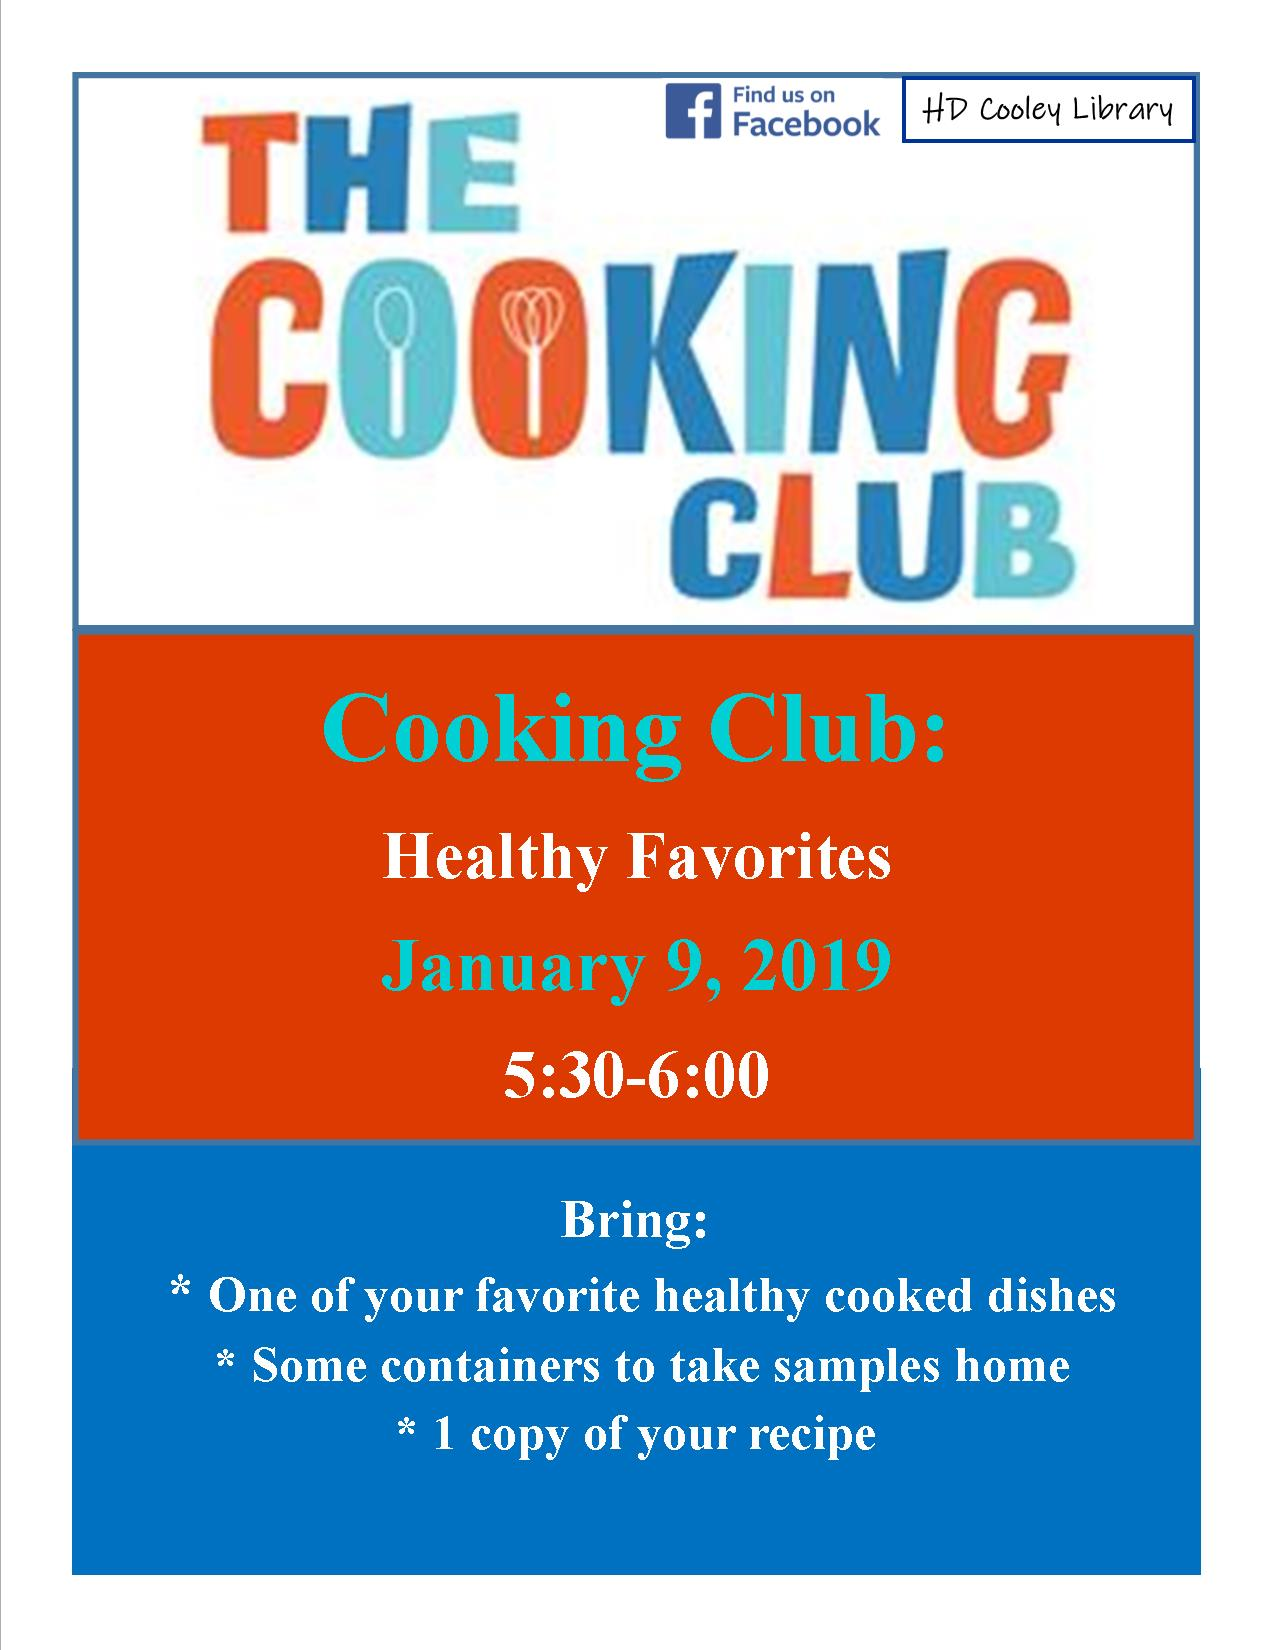 Cooking Club schedule and theme